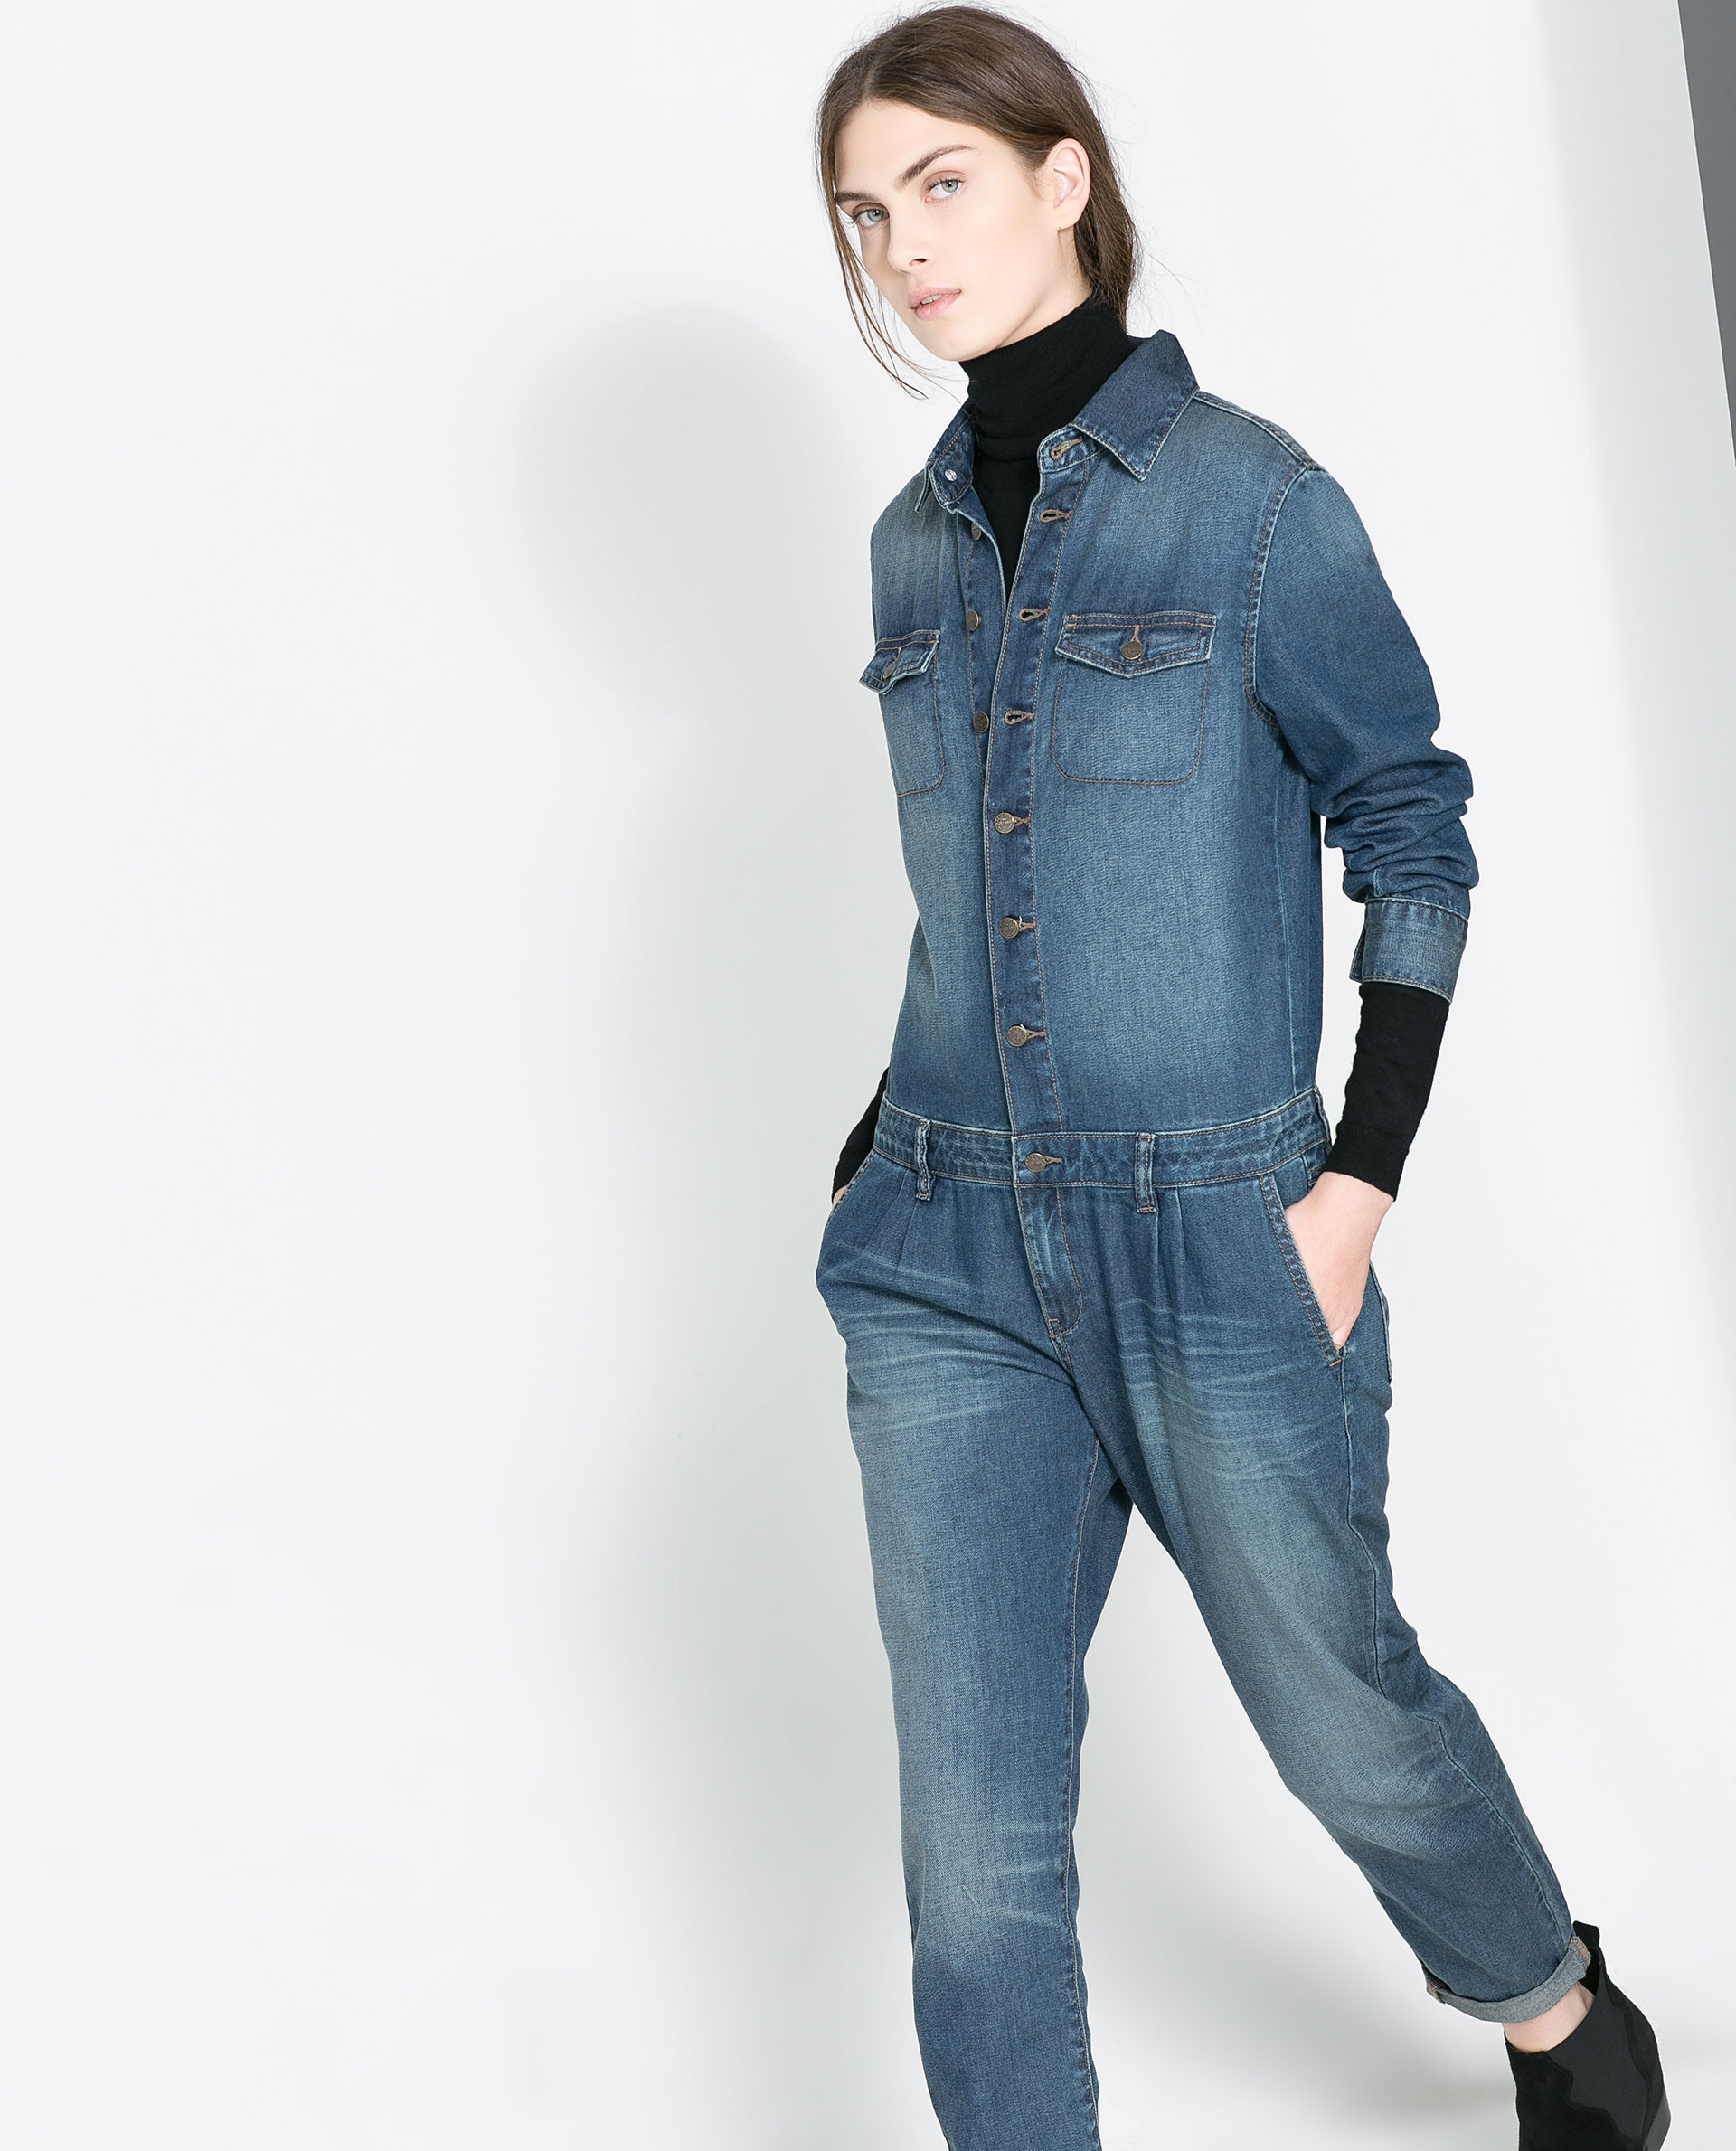 Denim Jumpsuits & Rompers. Denim jumpsuits and rompers are great options for the weekend and easily go from day to night with sexy heels or a cute cropped jacket.